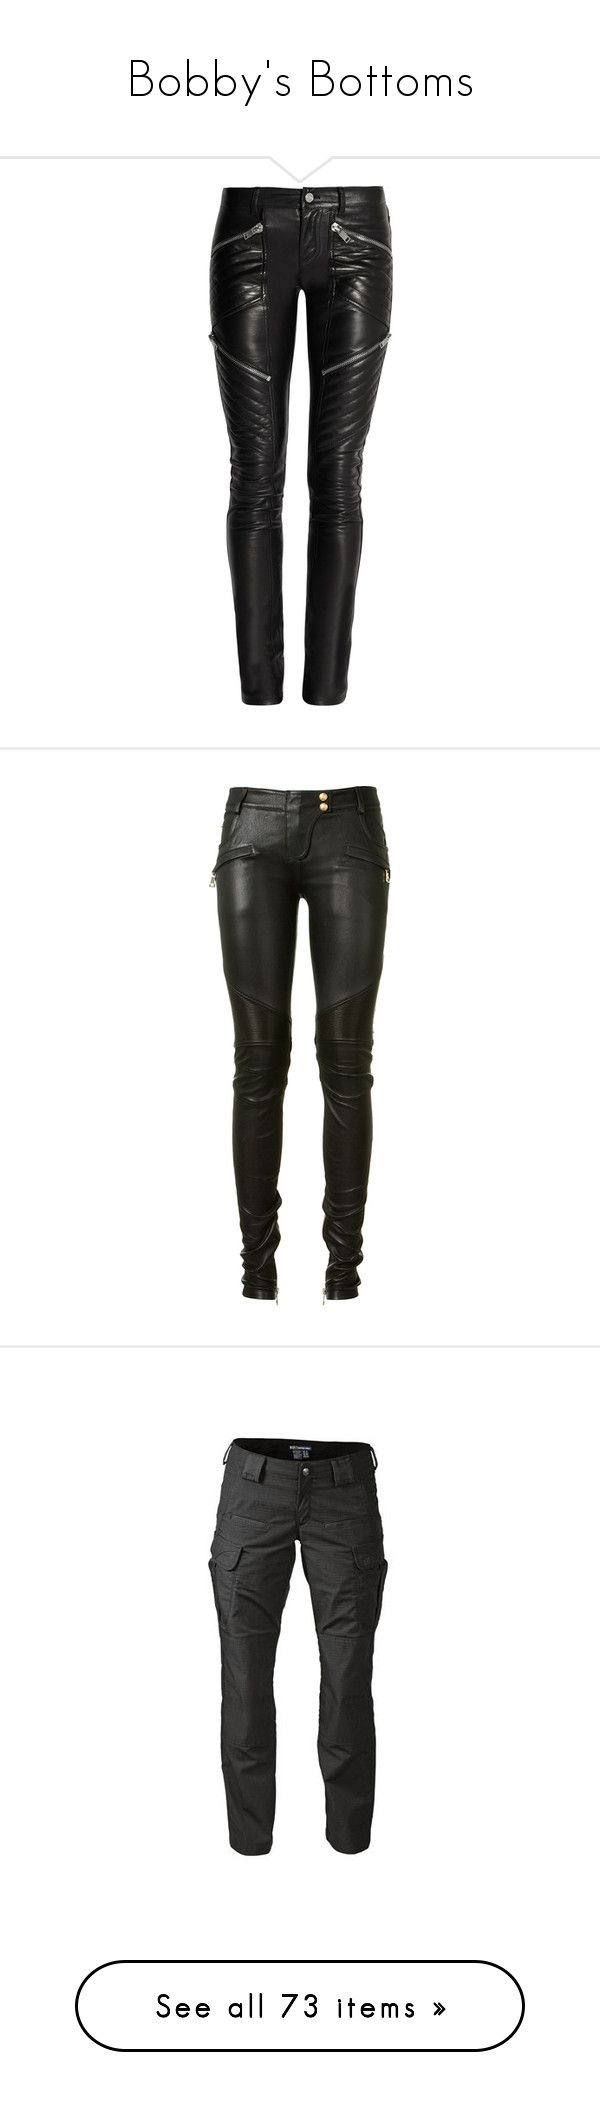 """""""Bobby's Bottoms"""" by ramble-on-my-wayward-cherry-pie ❤ liked on Polyvore featuring pants, bottoms, jeans, trousers, black, skinny pants, stretch pants, stretchy pants, five pocket pants and leather trousers"""